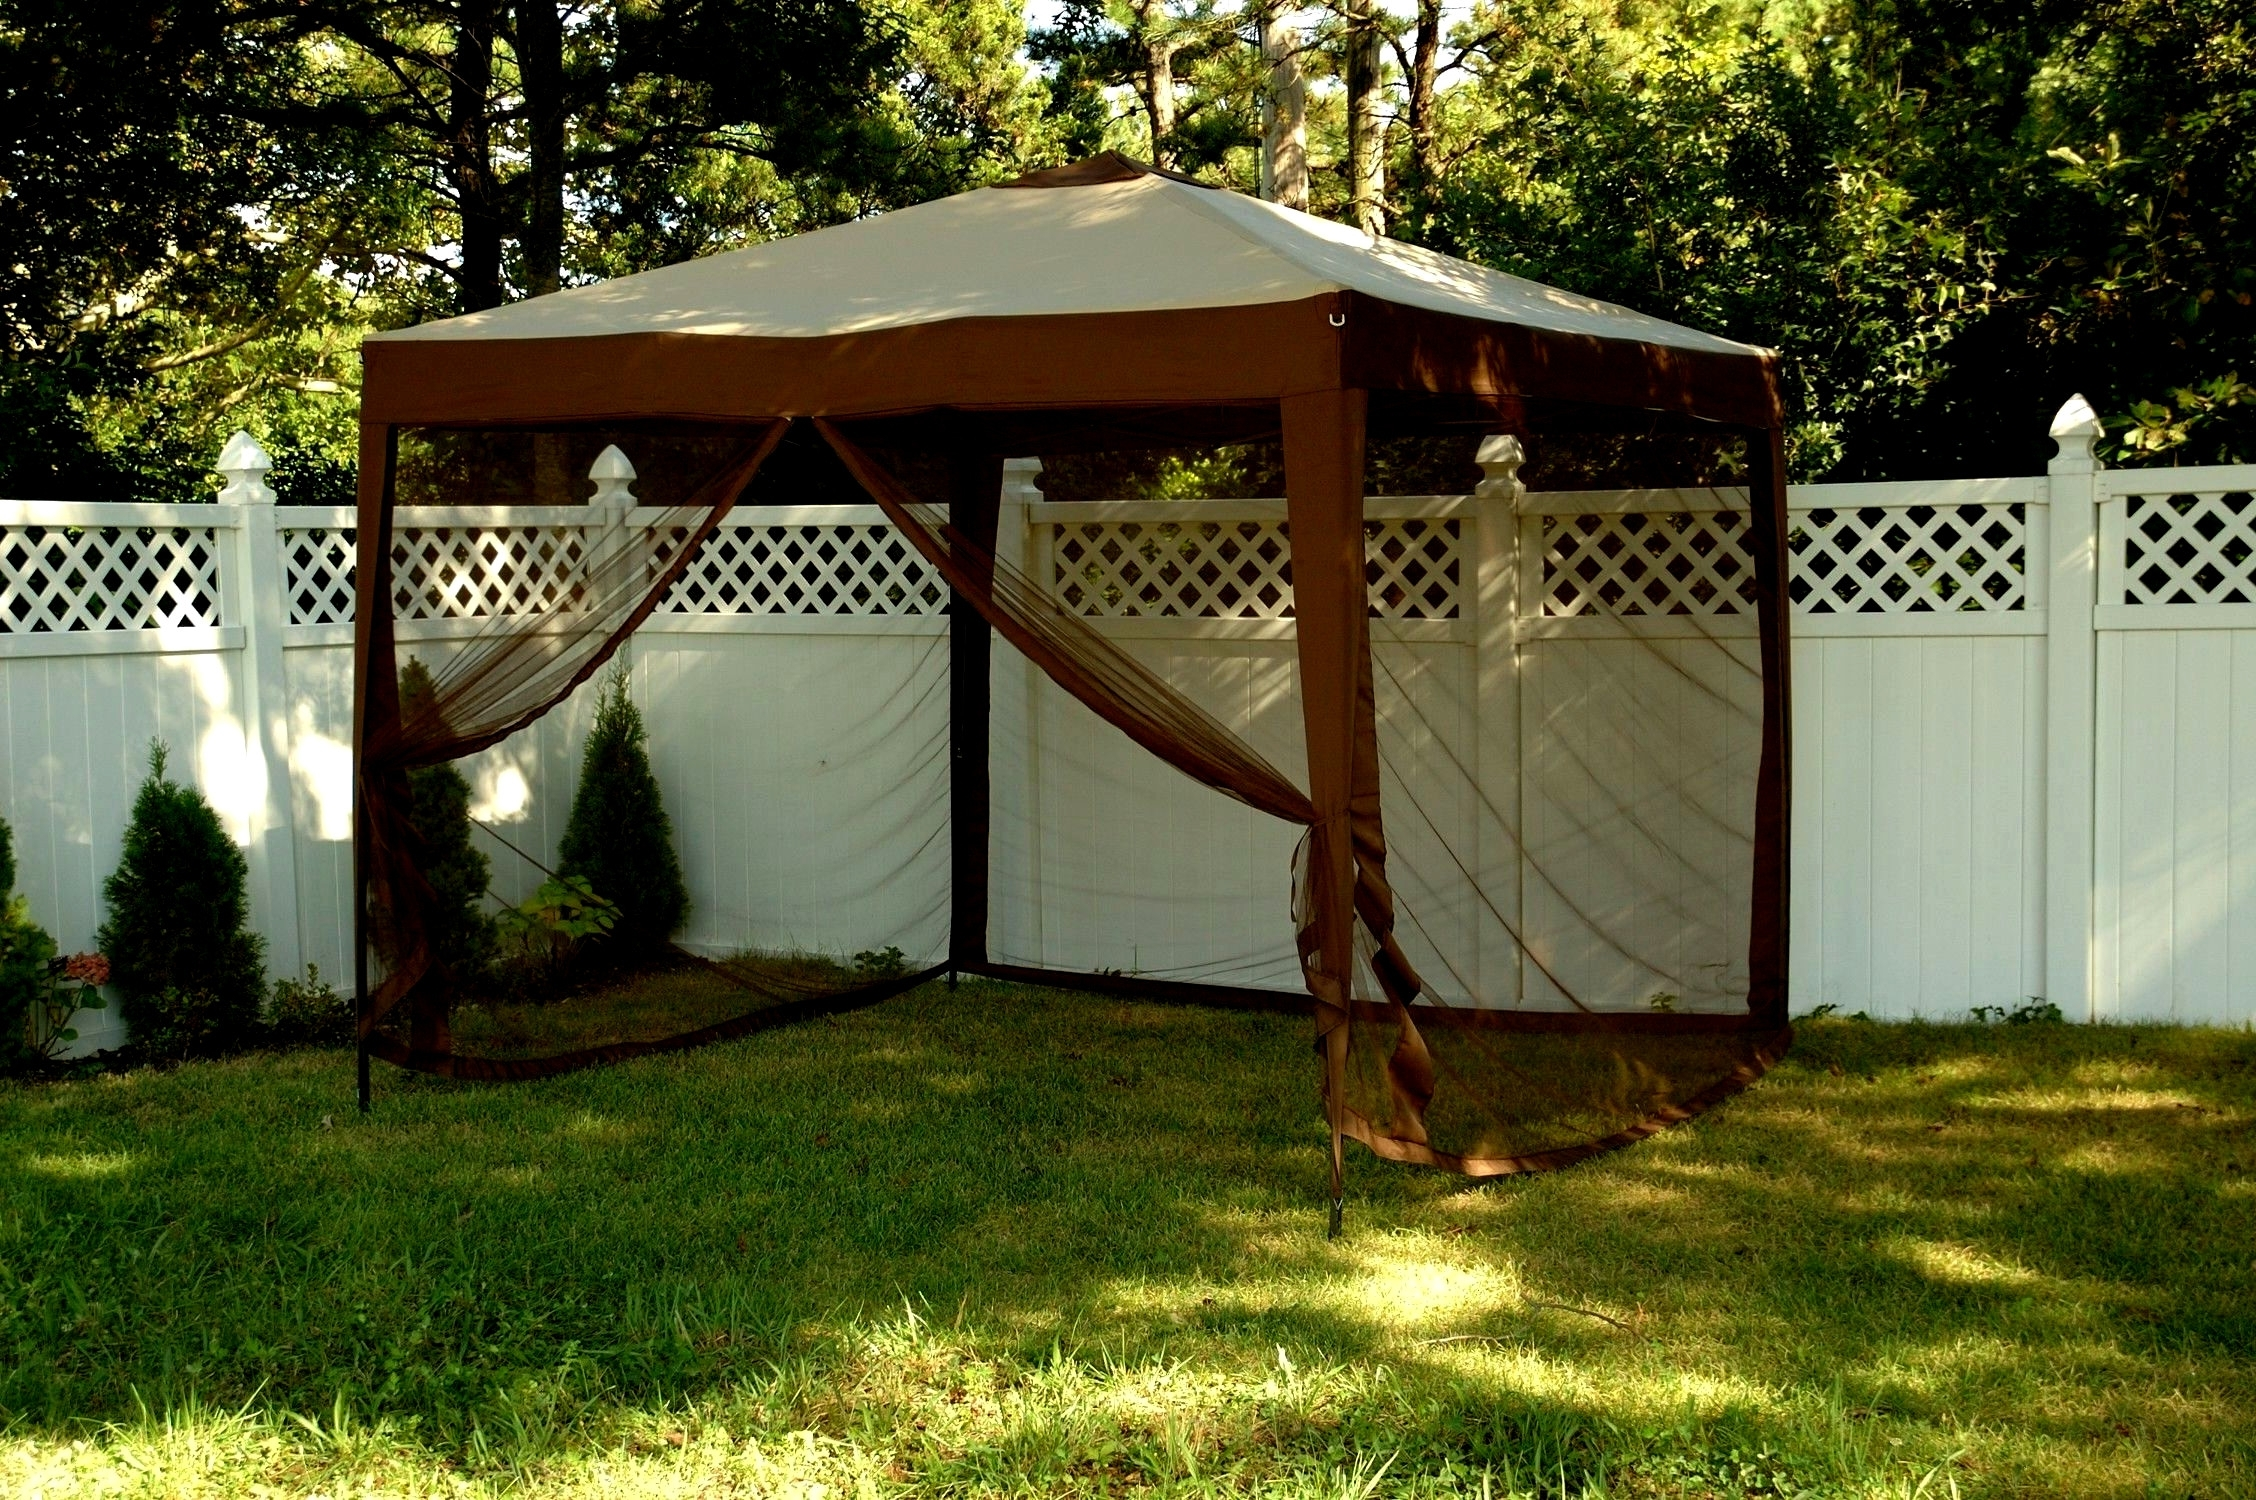 Patio Umbrellas With Netting In Trendy Mosquito Netting For Patio Umbrella (View 14 of 20)